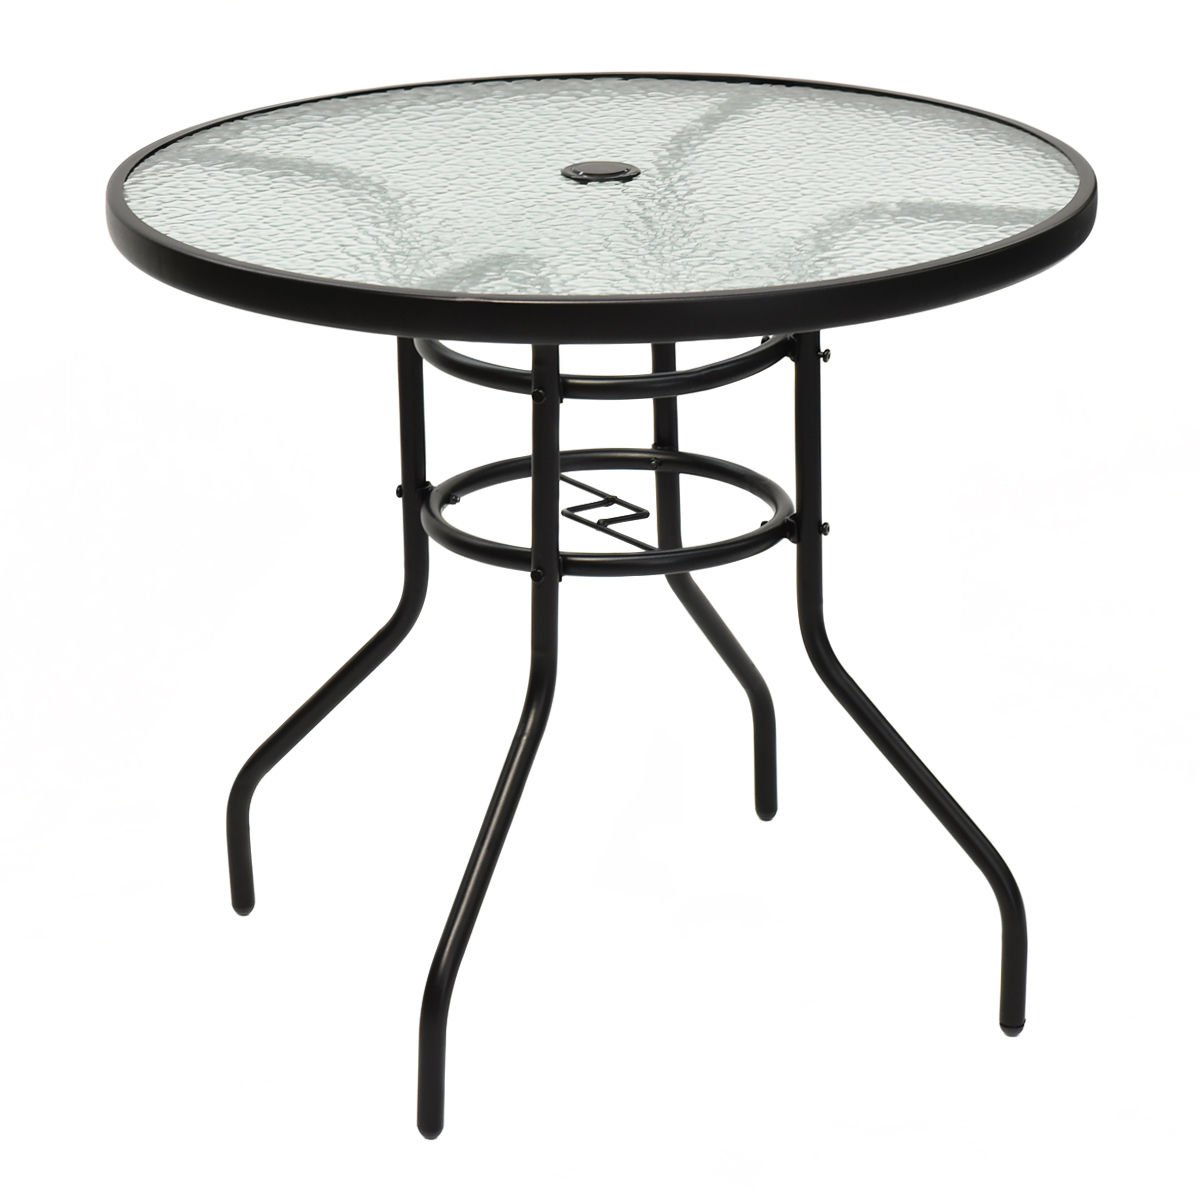 TANGKULA 31.5'' Outdoor Patio Table Round Steel Frame Tempered Glass Top Commercial Party Event Furniture Conversation Coffee Table for Backyard Lawn Balcony Pool with Umbrella Hole